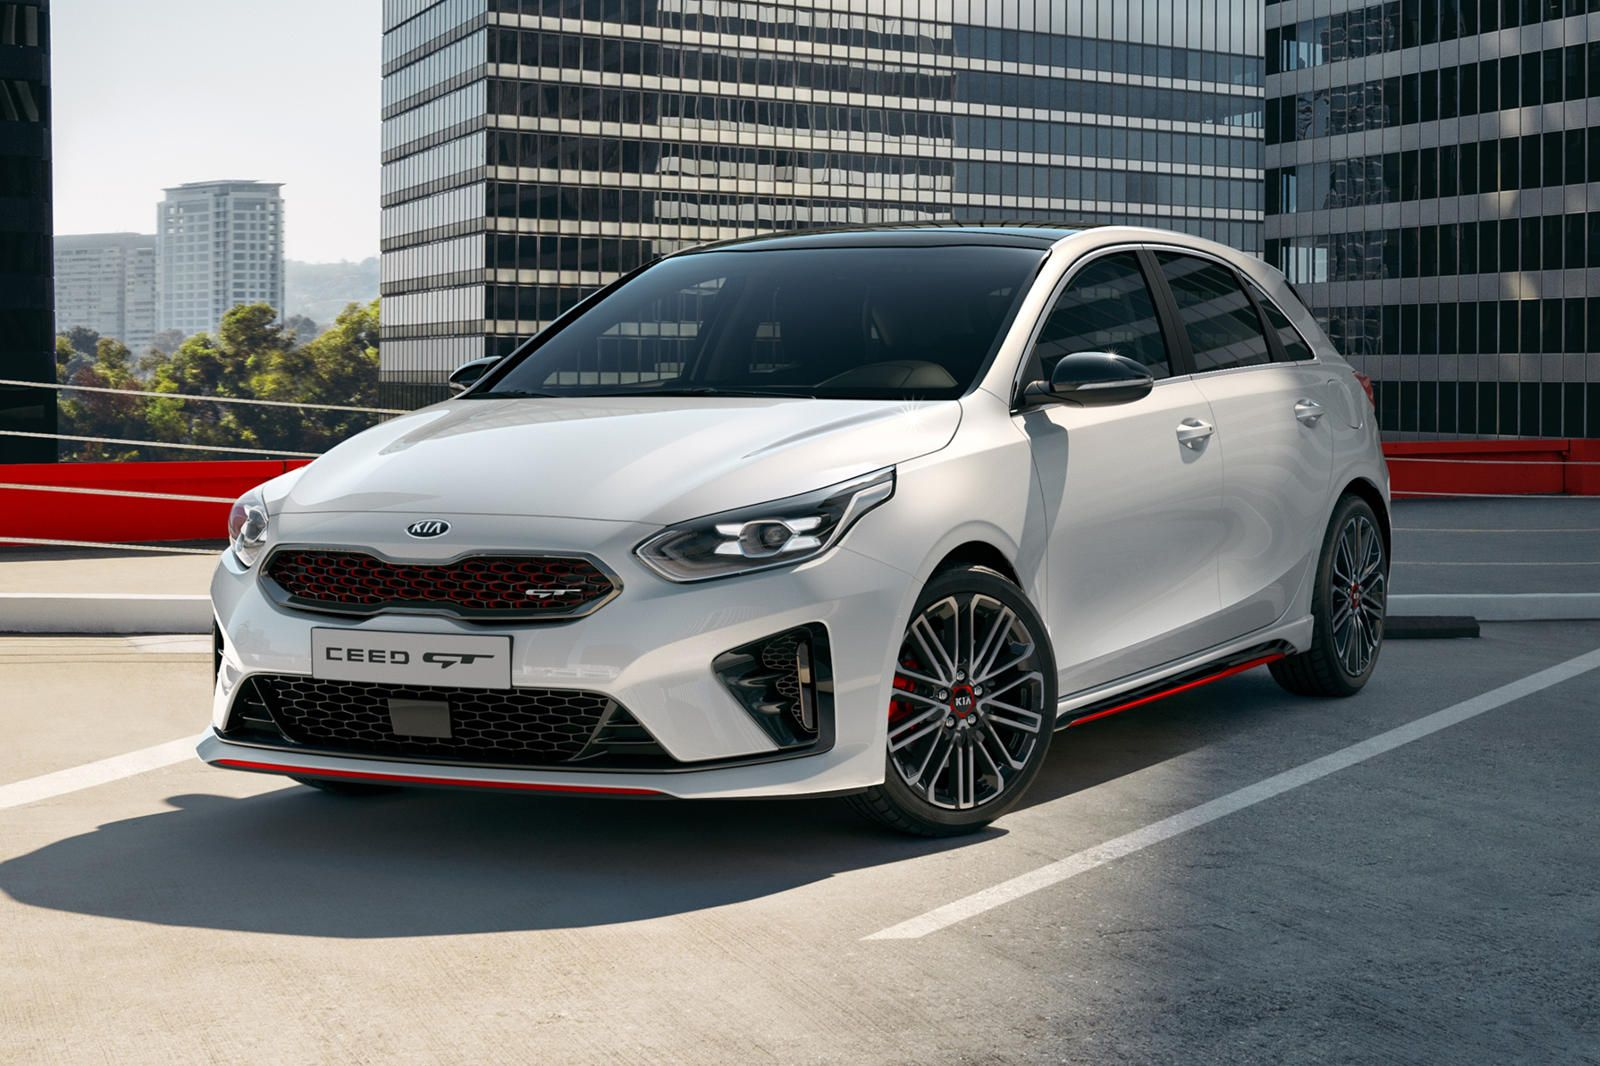 2019 Kia Ceed Gt Could Preview The New Forte5 Hot Hatch Kia